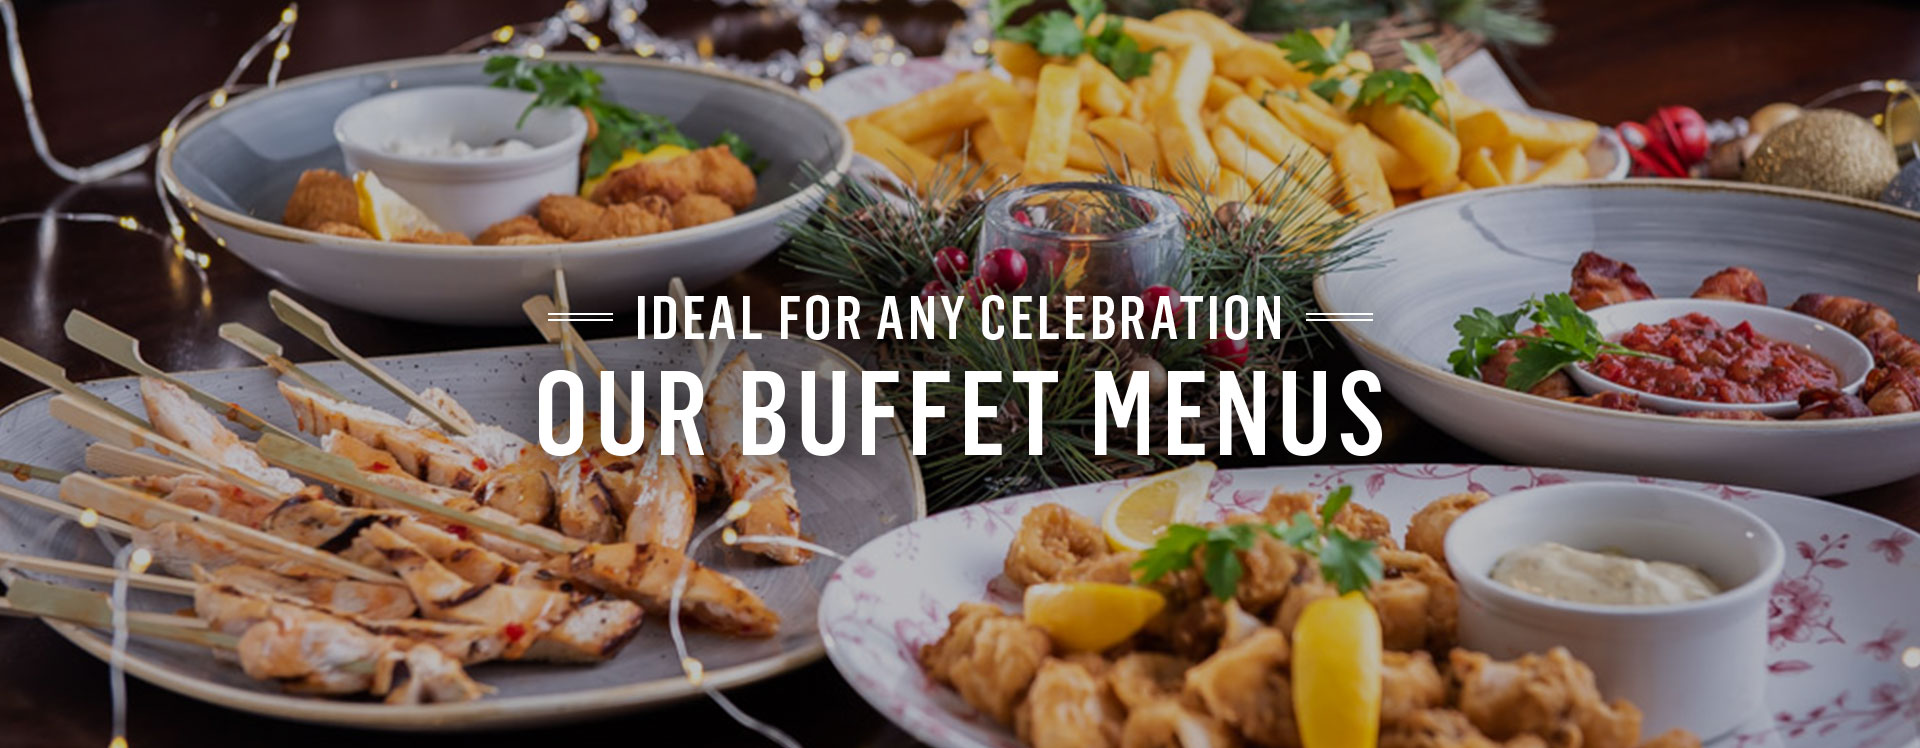 Buffet and Drinks Packages at Nicholson's